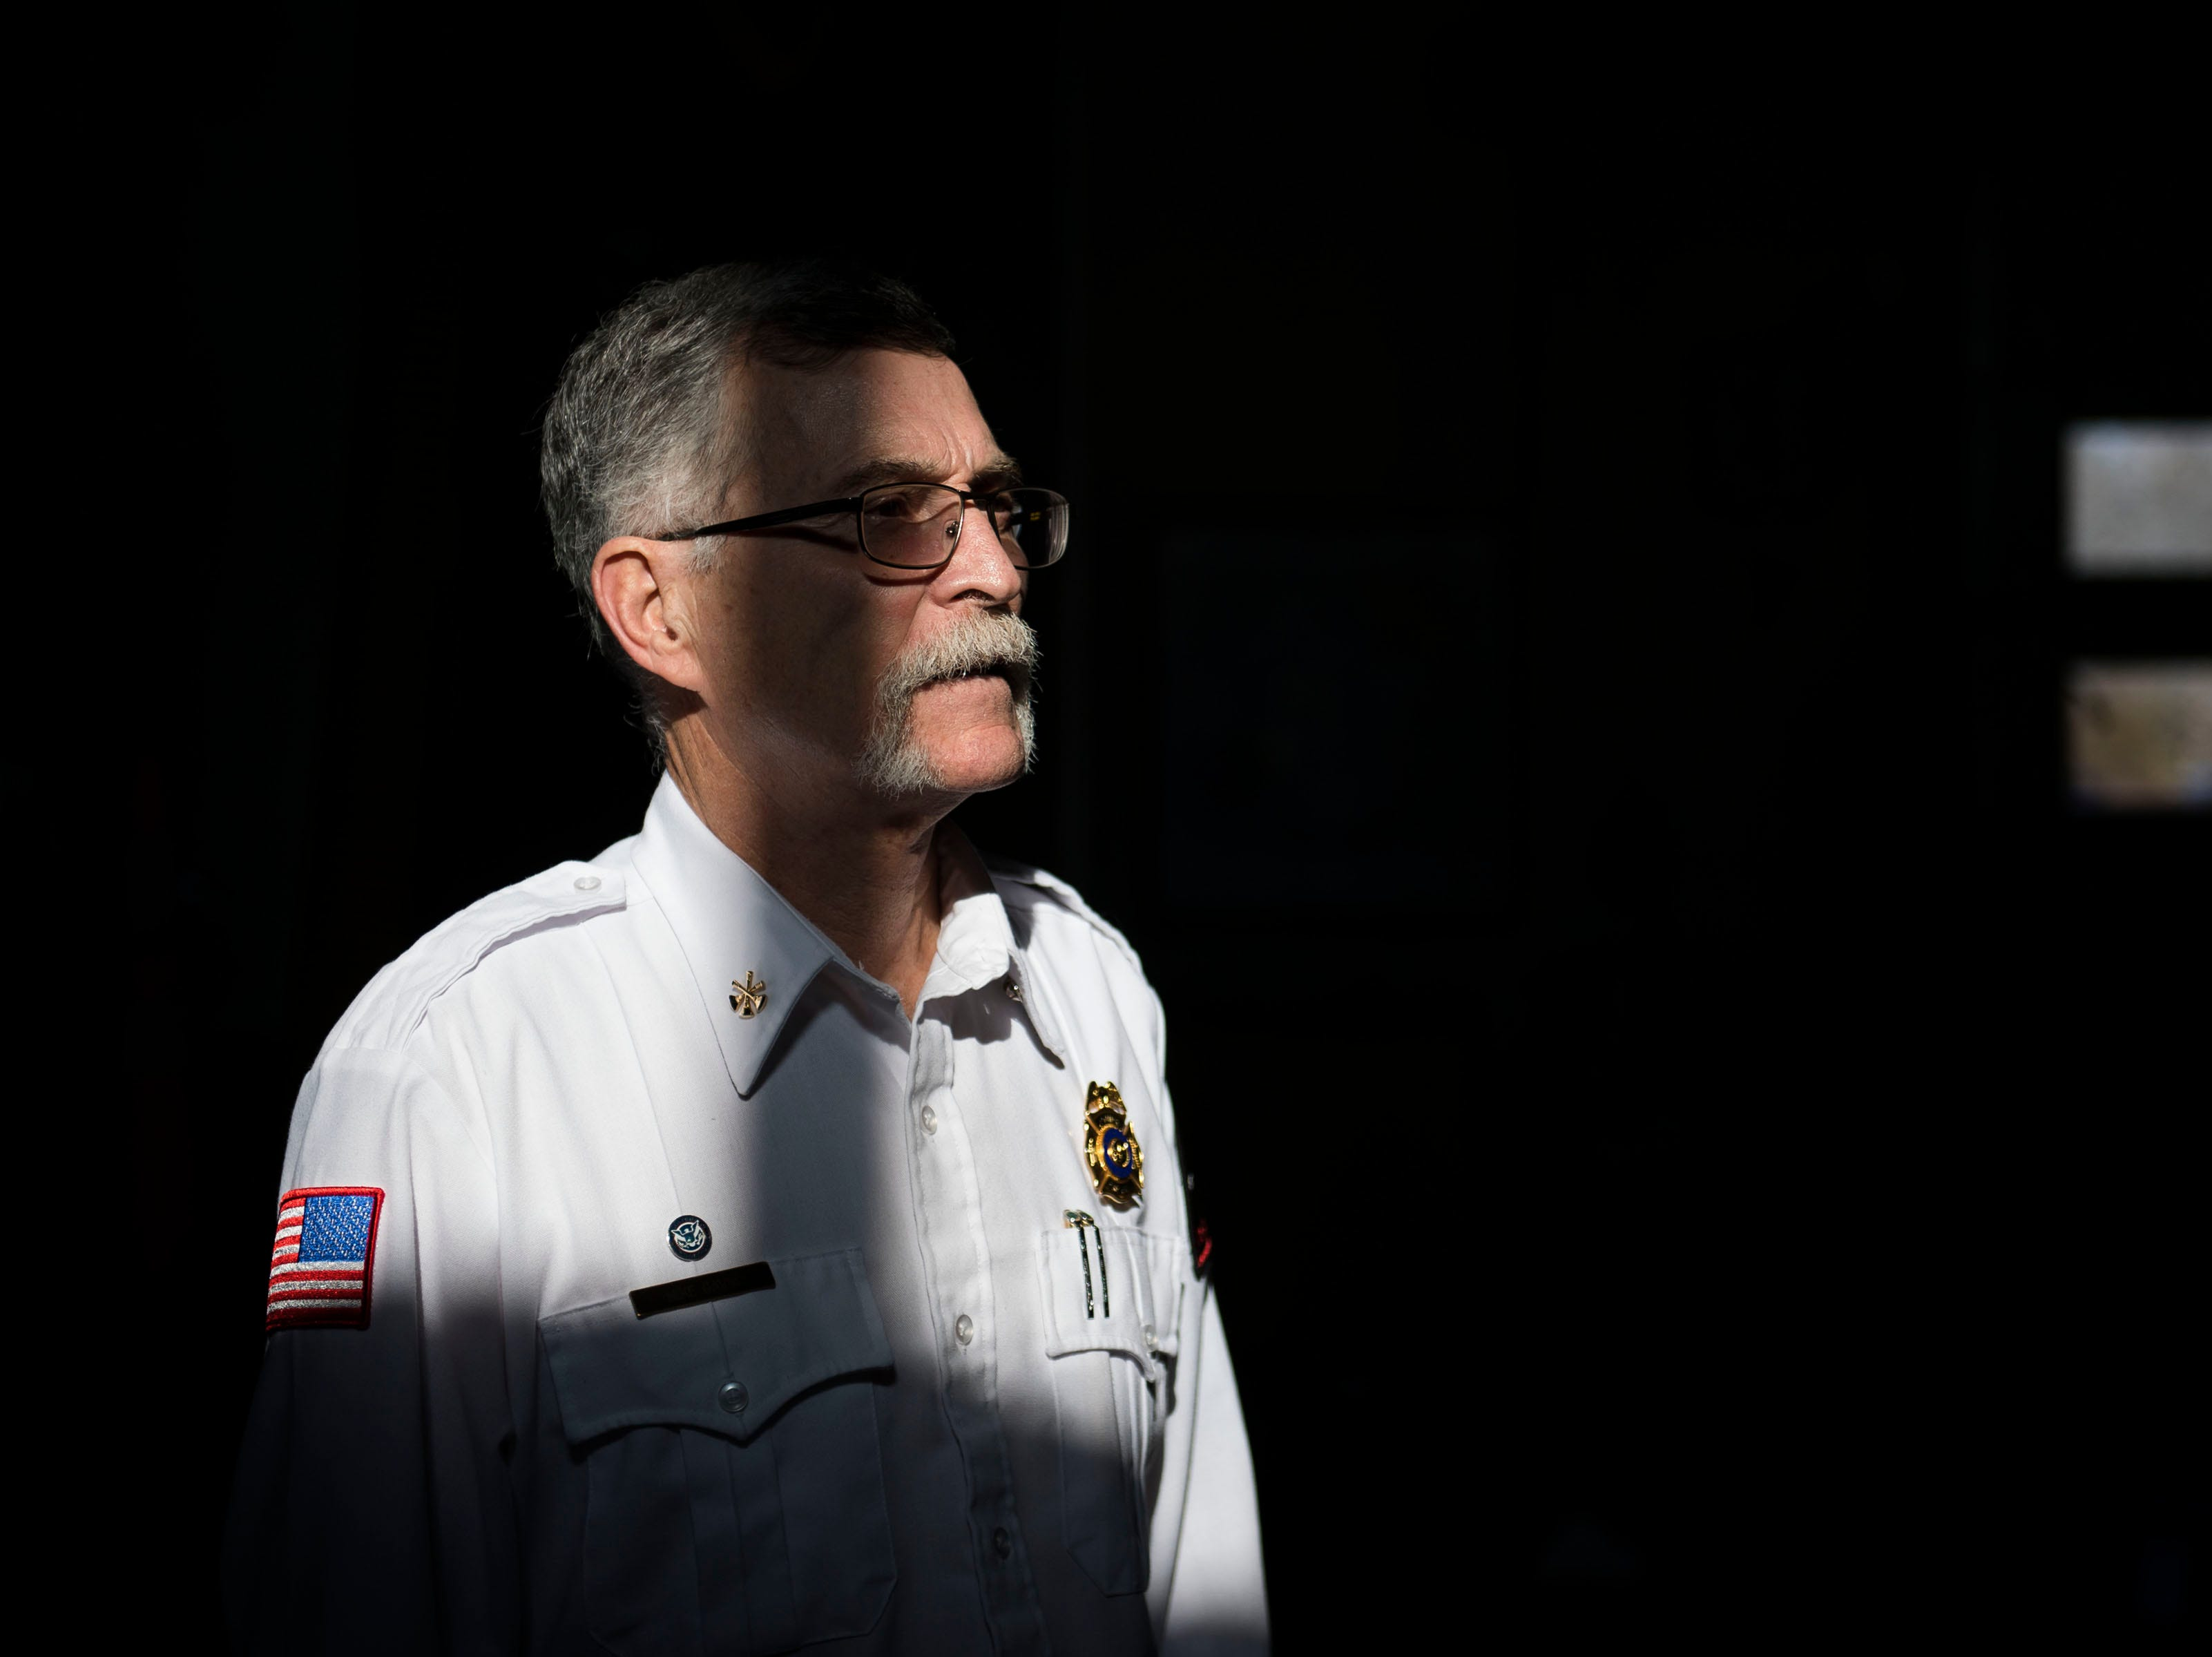 Retiring city emergency manager and battalion chief Mike Gavin poses for a portrait on Thursday, Jan. 24, 2019, at Poudre Fire Authority Station 10 in Fort Collins, Colo.